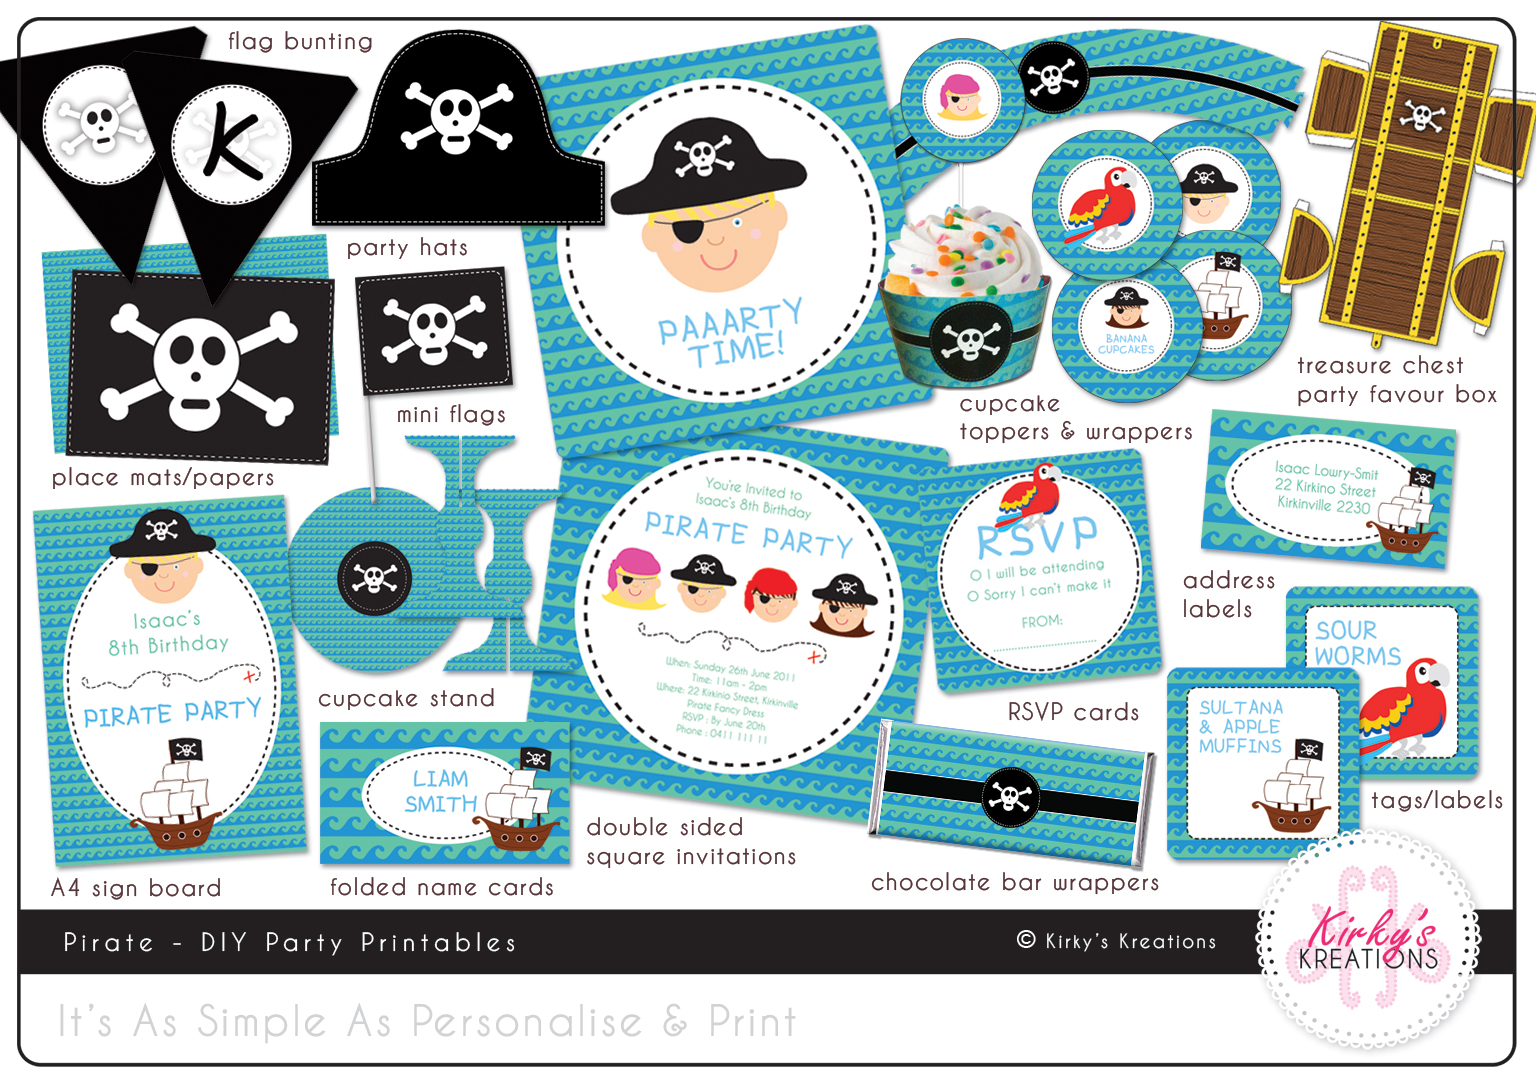 KIRKYs BLOG Pirate Princess DIY Party Printables – Princess and Pirates Party Invitations